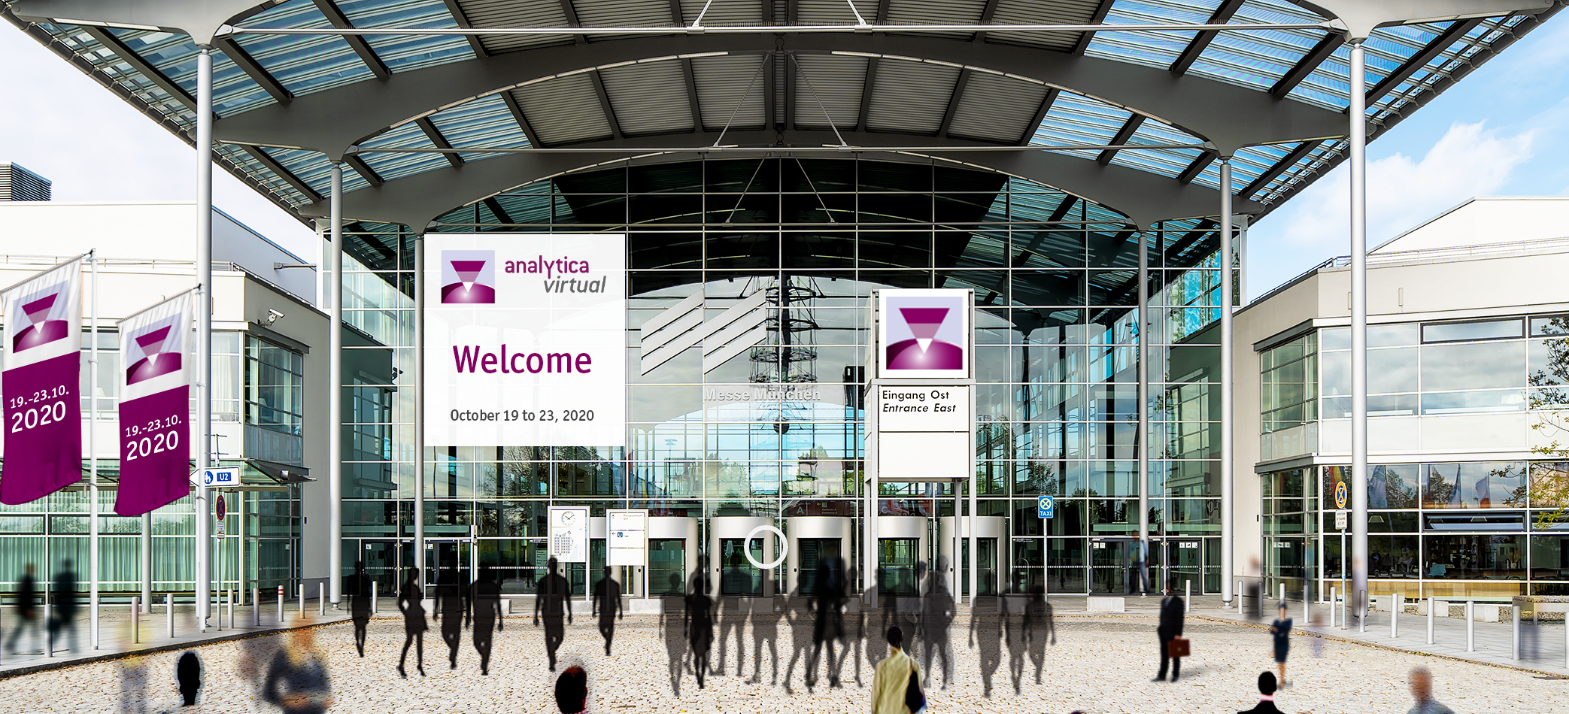 The virtual entry to the digital analytica 2020 event